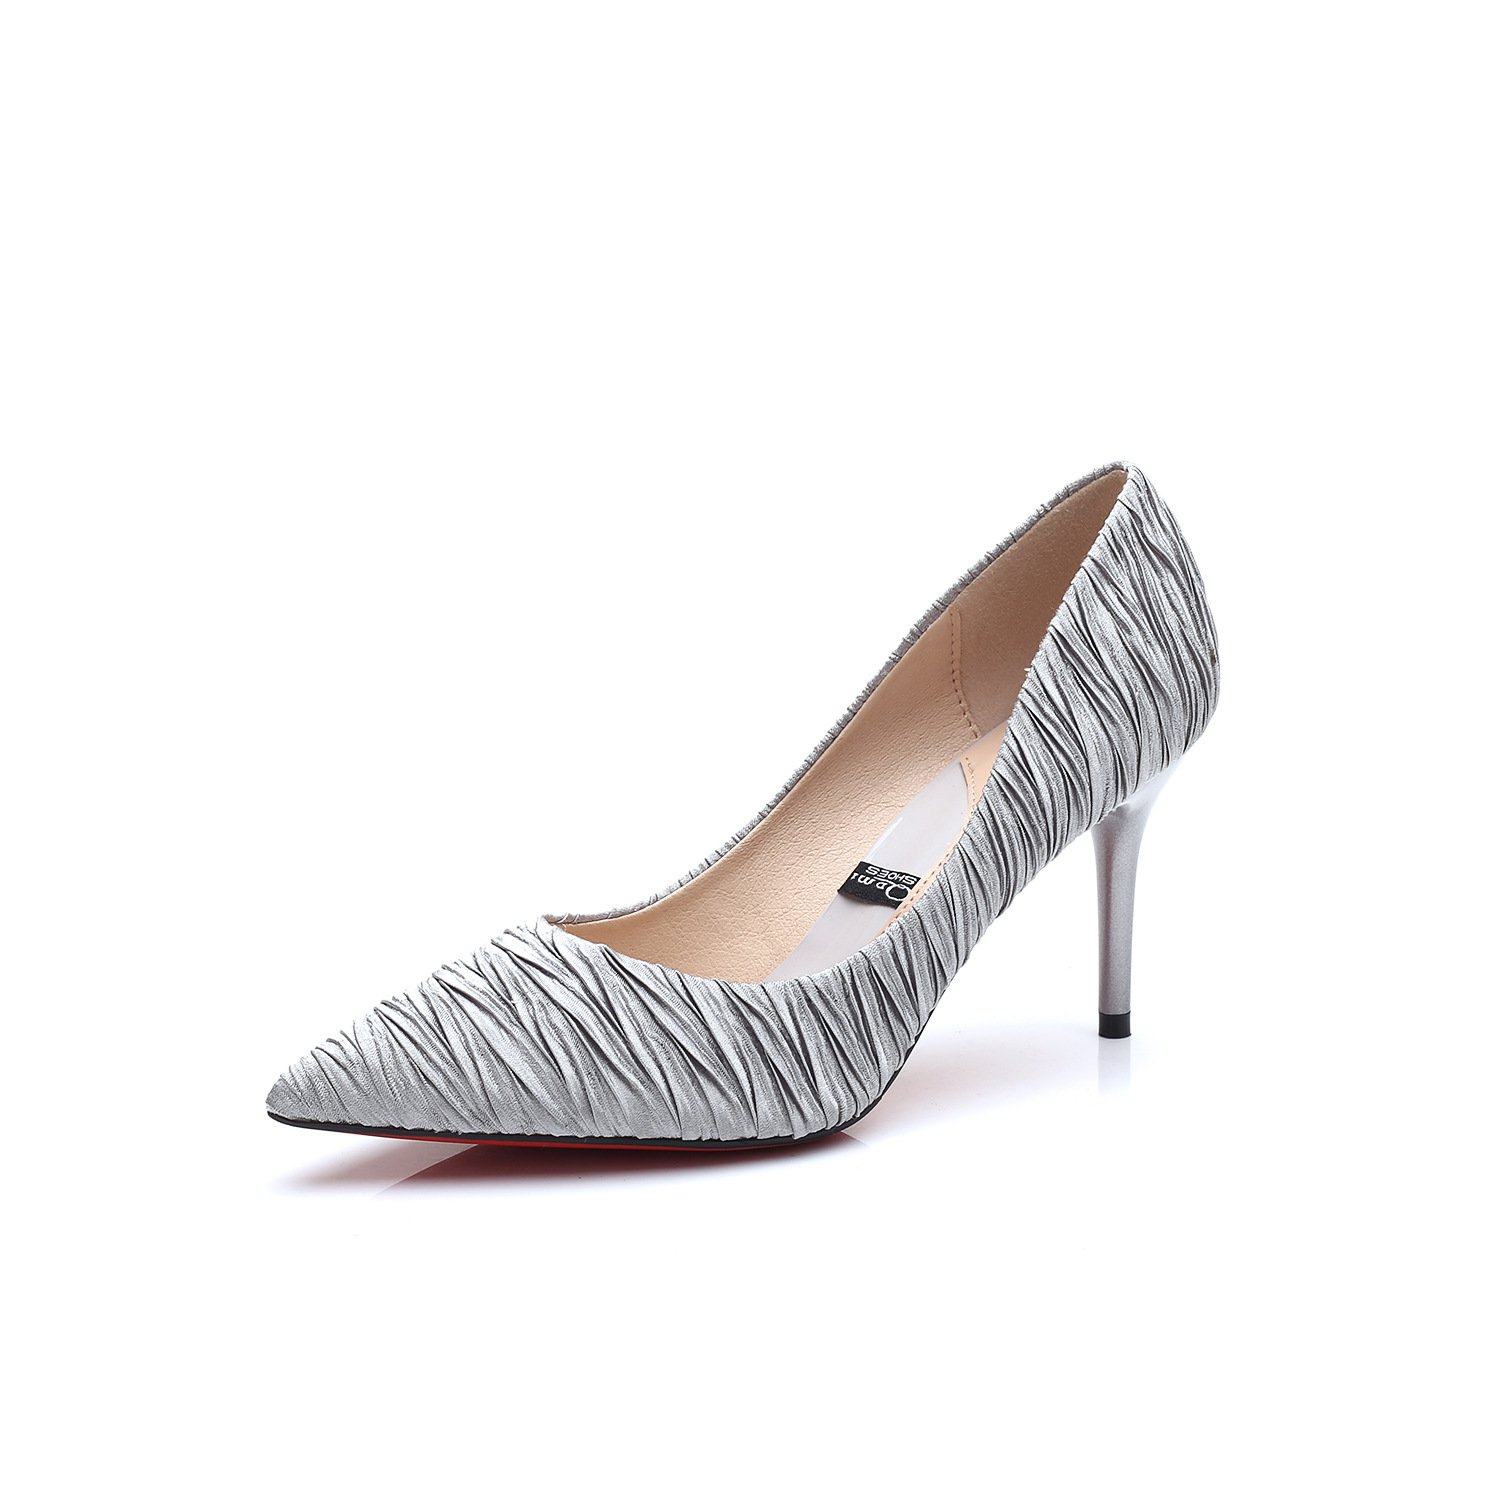 Tip of the high-heel shoes single shoes women with fine satin embossed career Han edition, gray 35